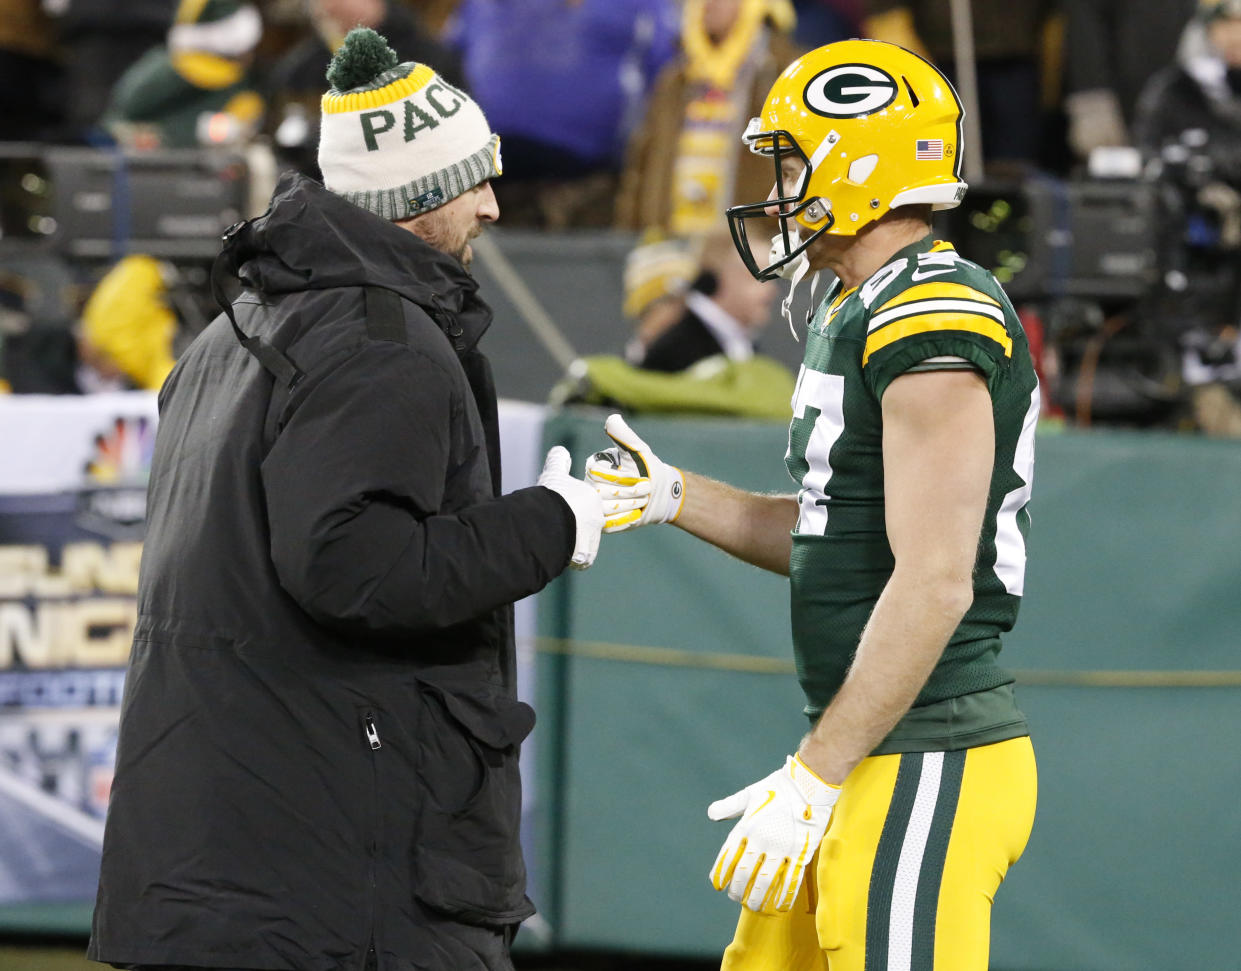 Green Bay Packers' Aaron Rodgers shakes hands with Jordy Nelson before an NFL football game against the Minnesota Vikings Saturday, Dec. 23, 2017, in Green Bay, Wis. (AP Photo/Mike Roemer)